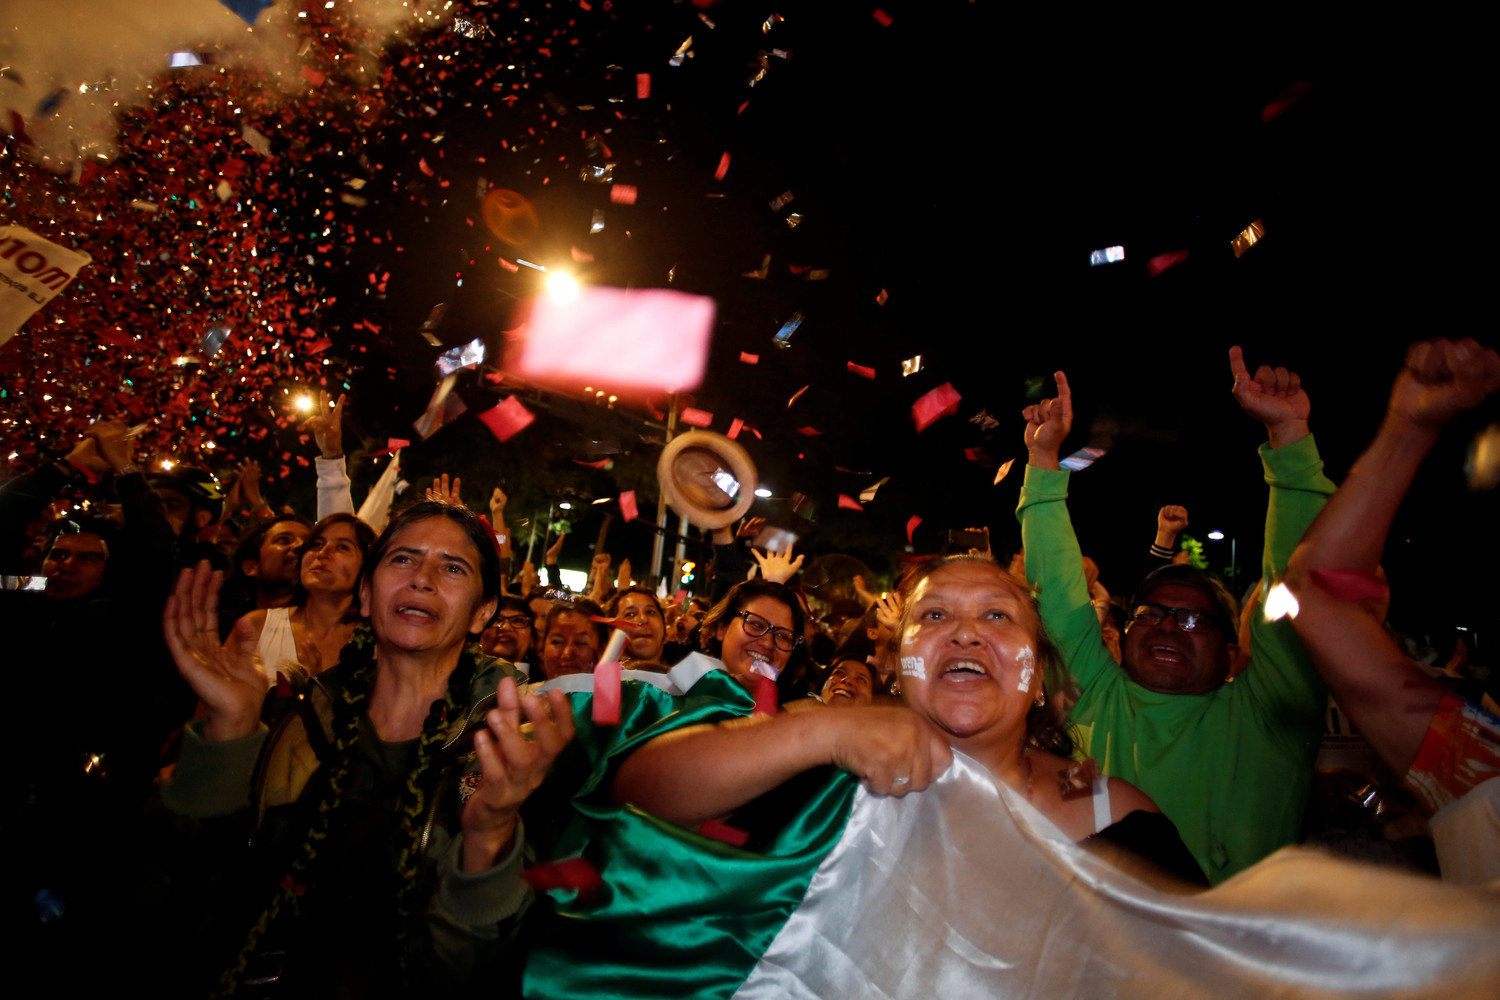 Supporters of Mexico's next President Andres Manuel Lopez Obrador celebrate July 1 in downtown Mexico City.